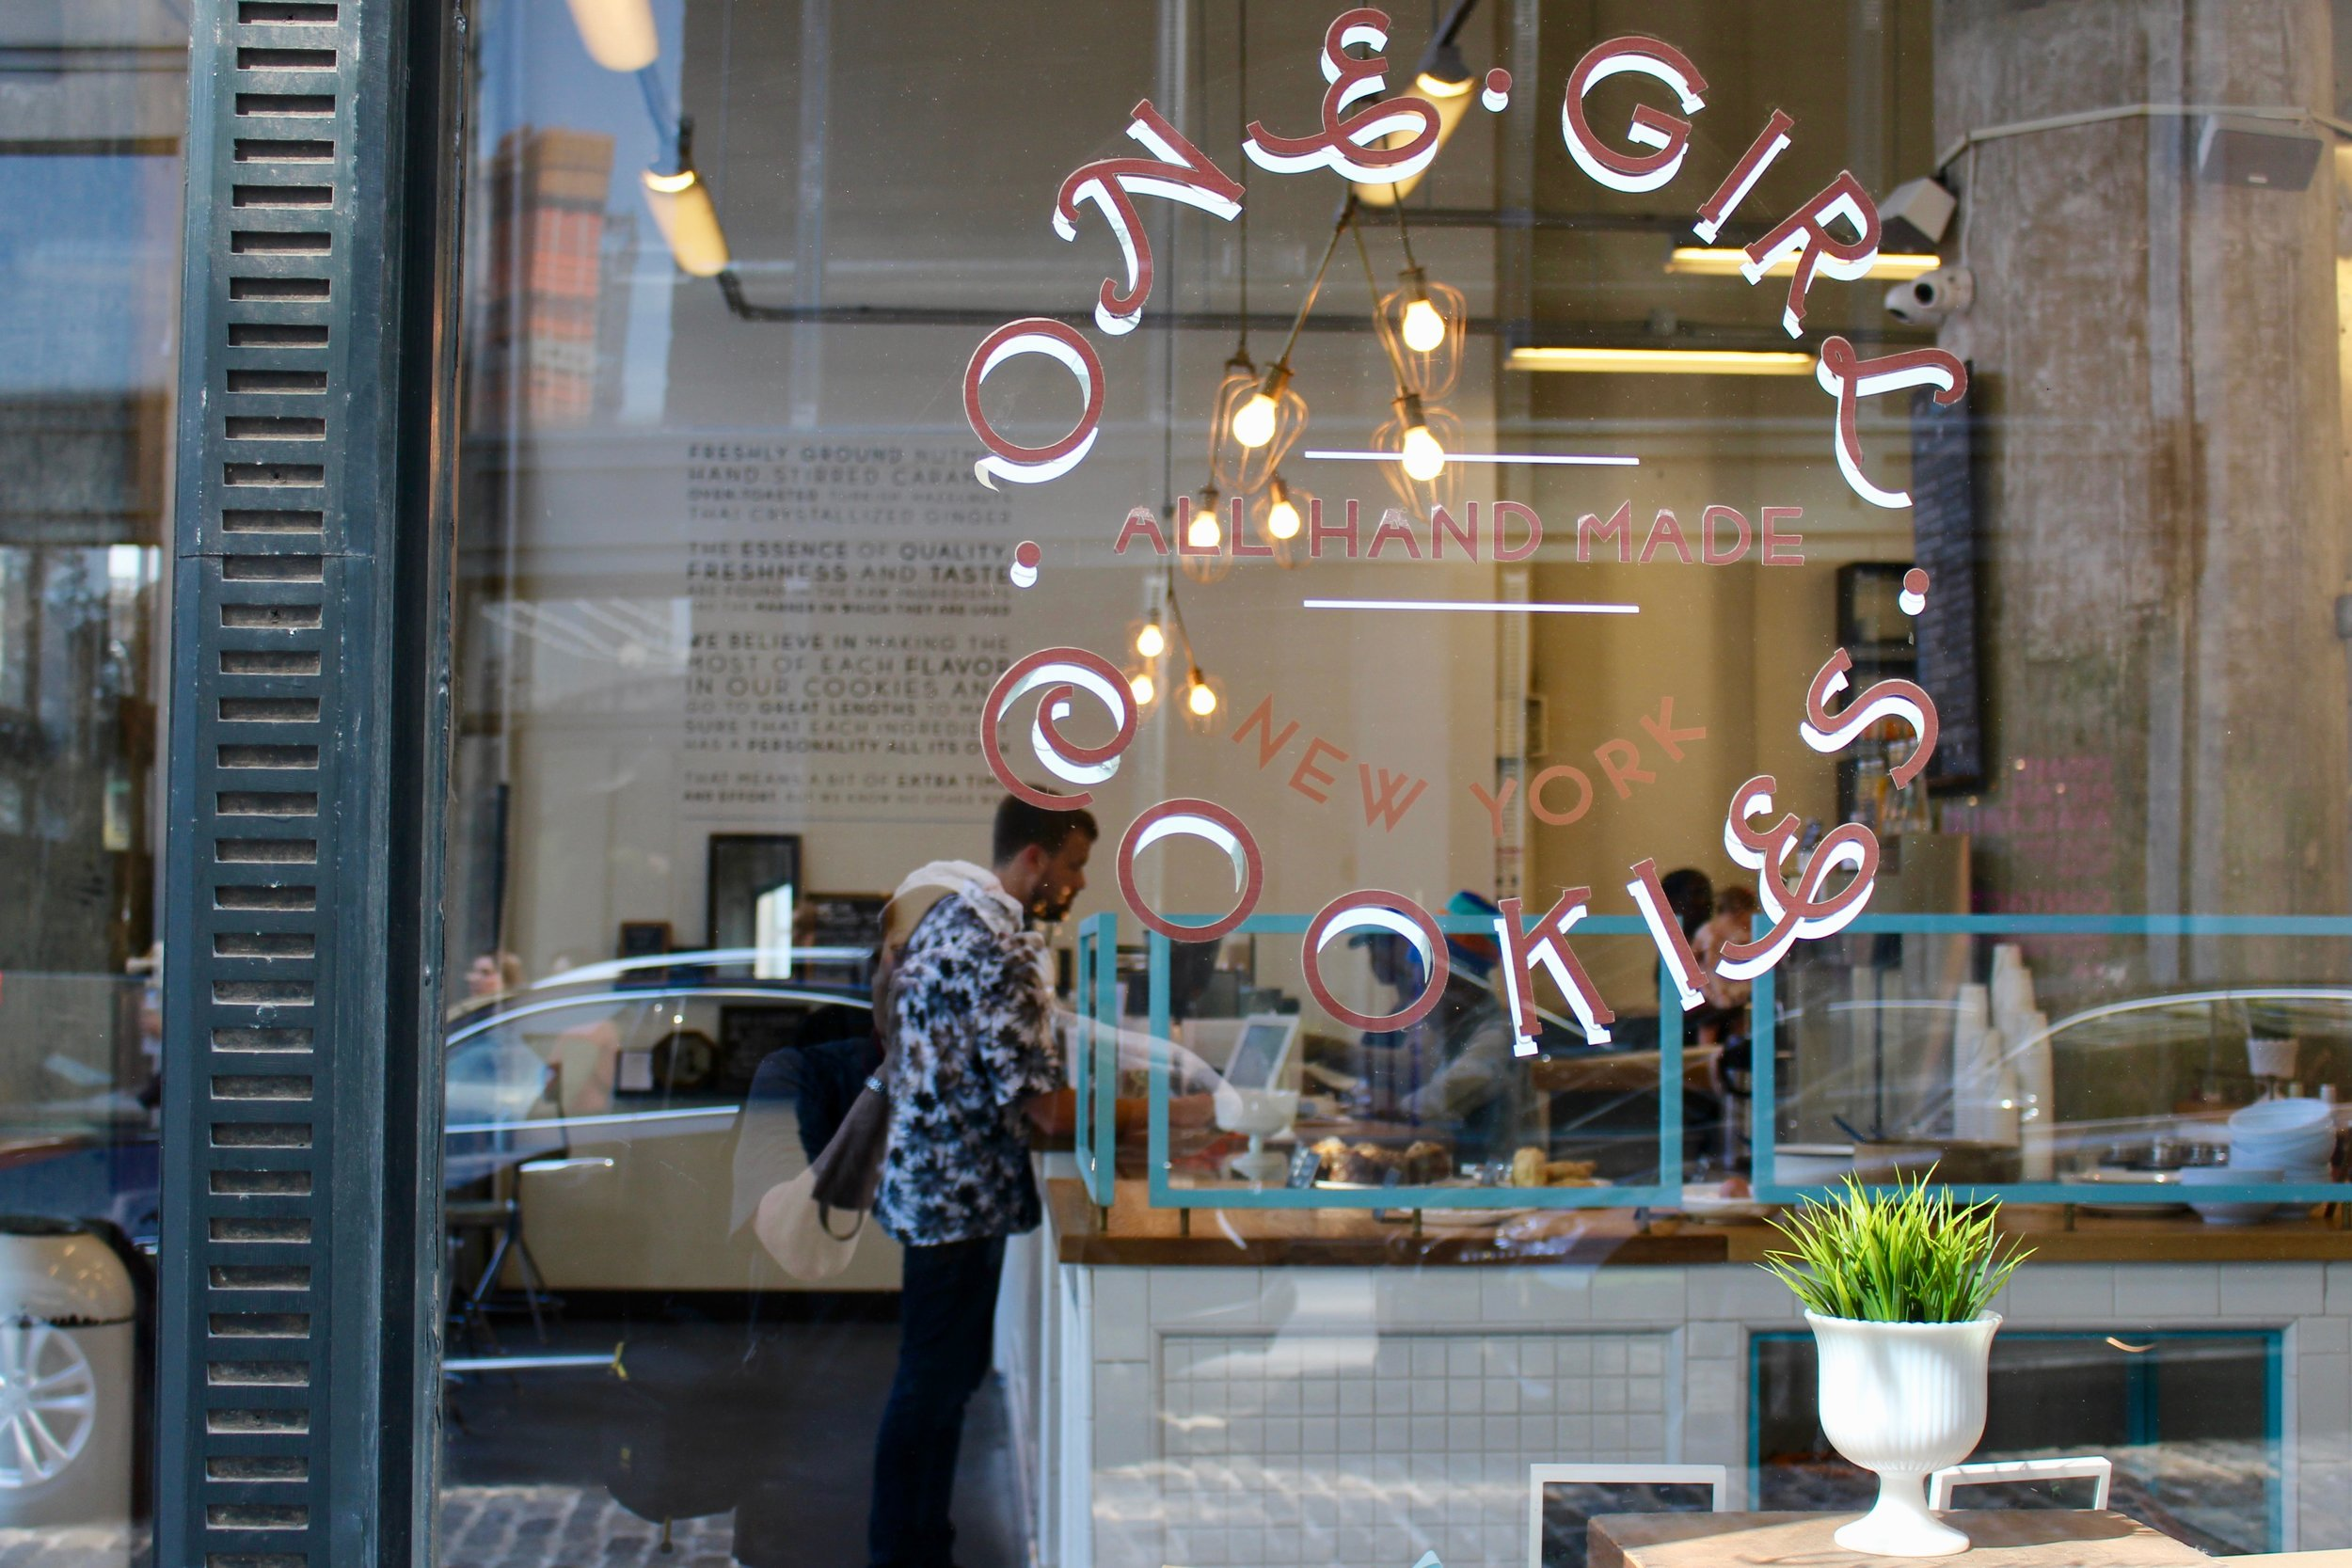 Through the window at One Girl Cookies, Water Street side.